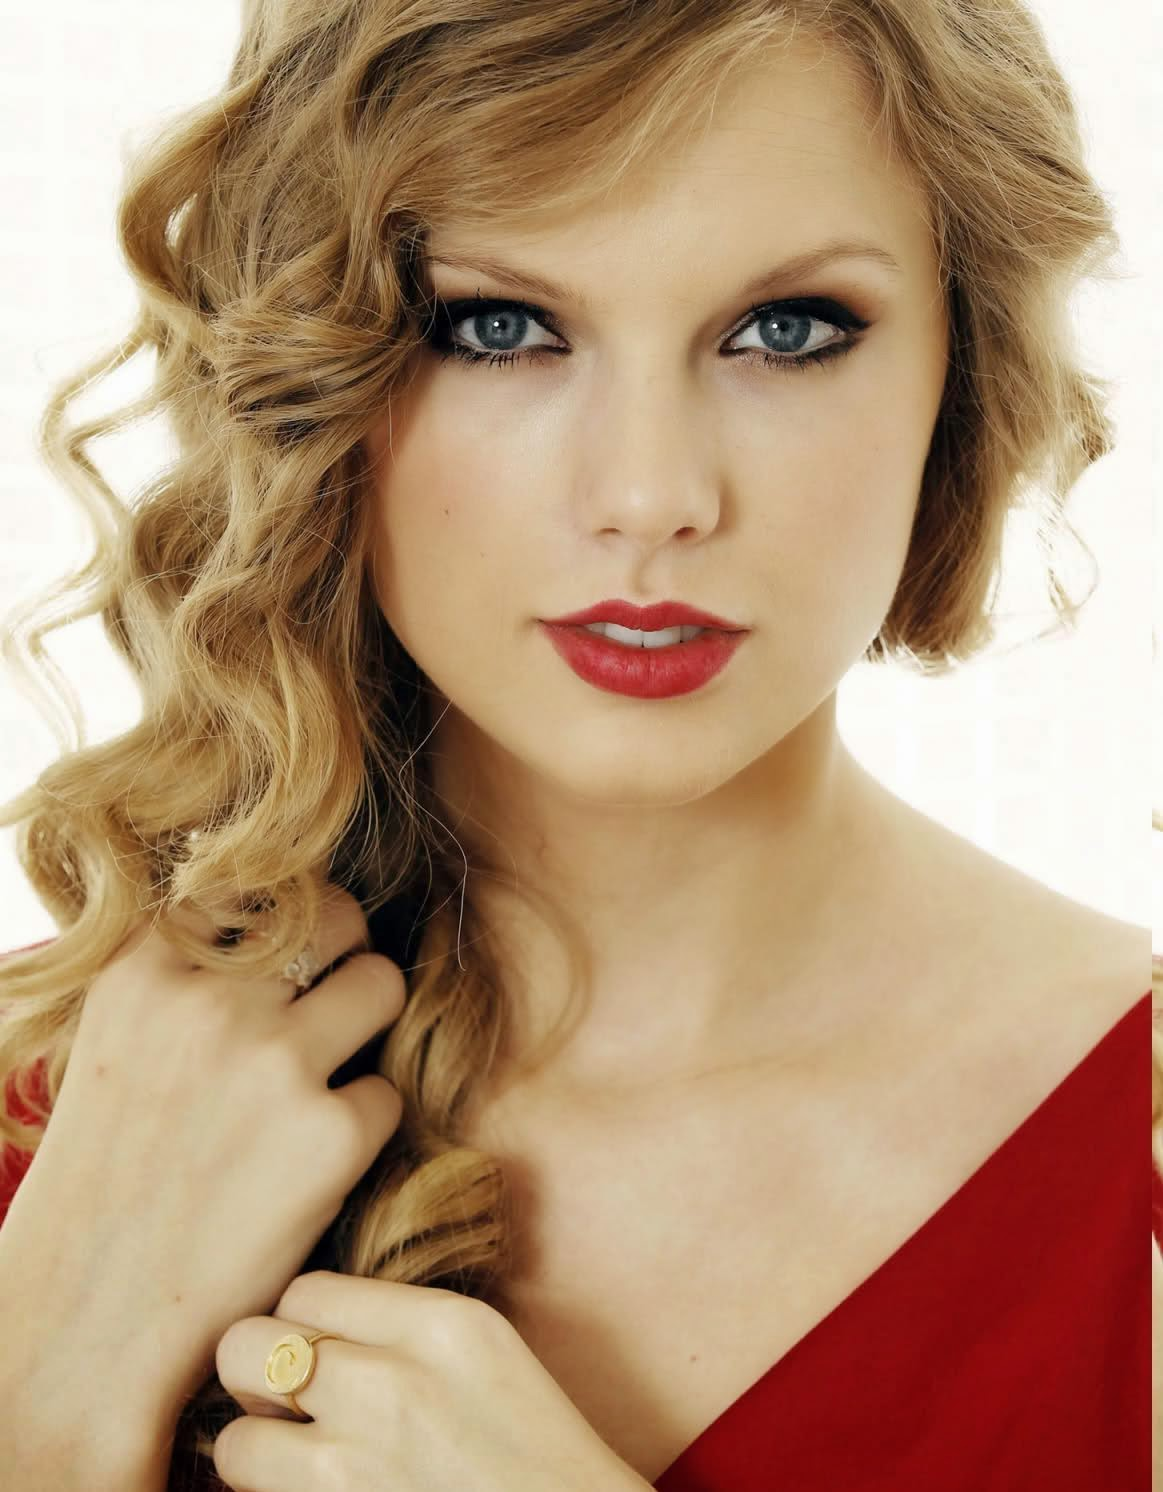 Latest And Trending Songs Lyrics Taylor Swift Tied Together With A Smile Lyricstay